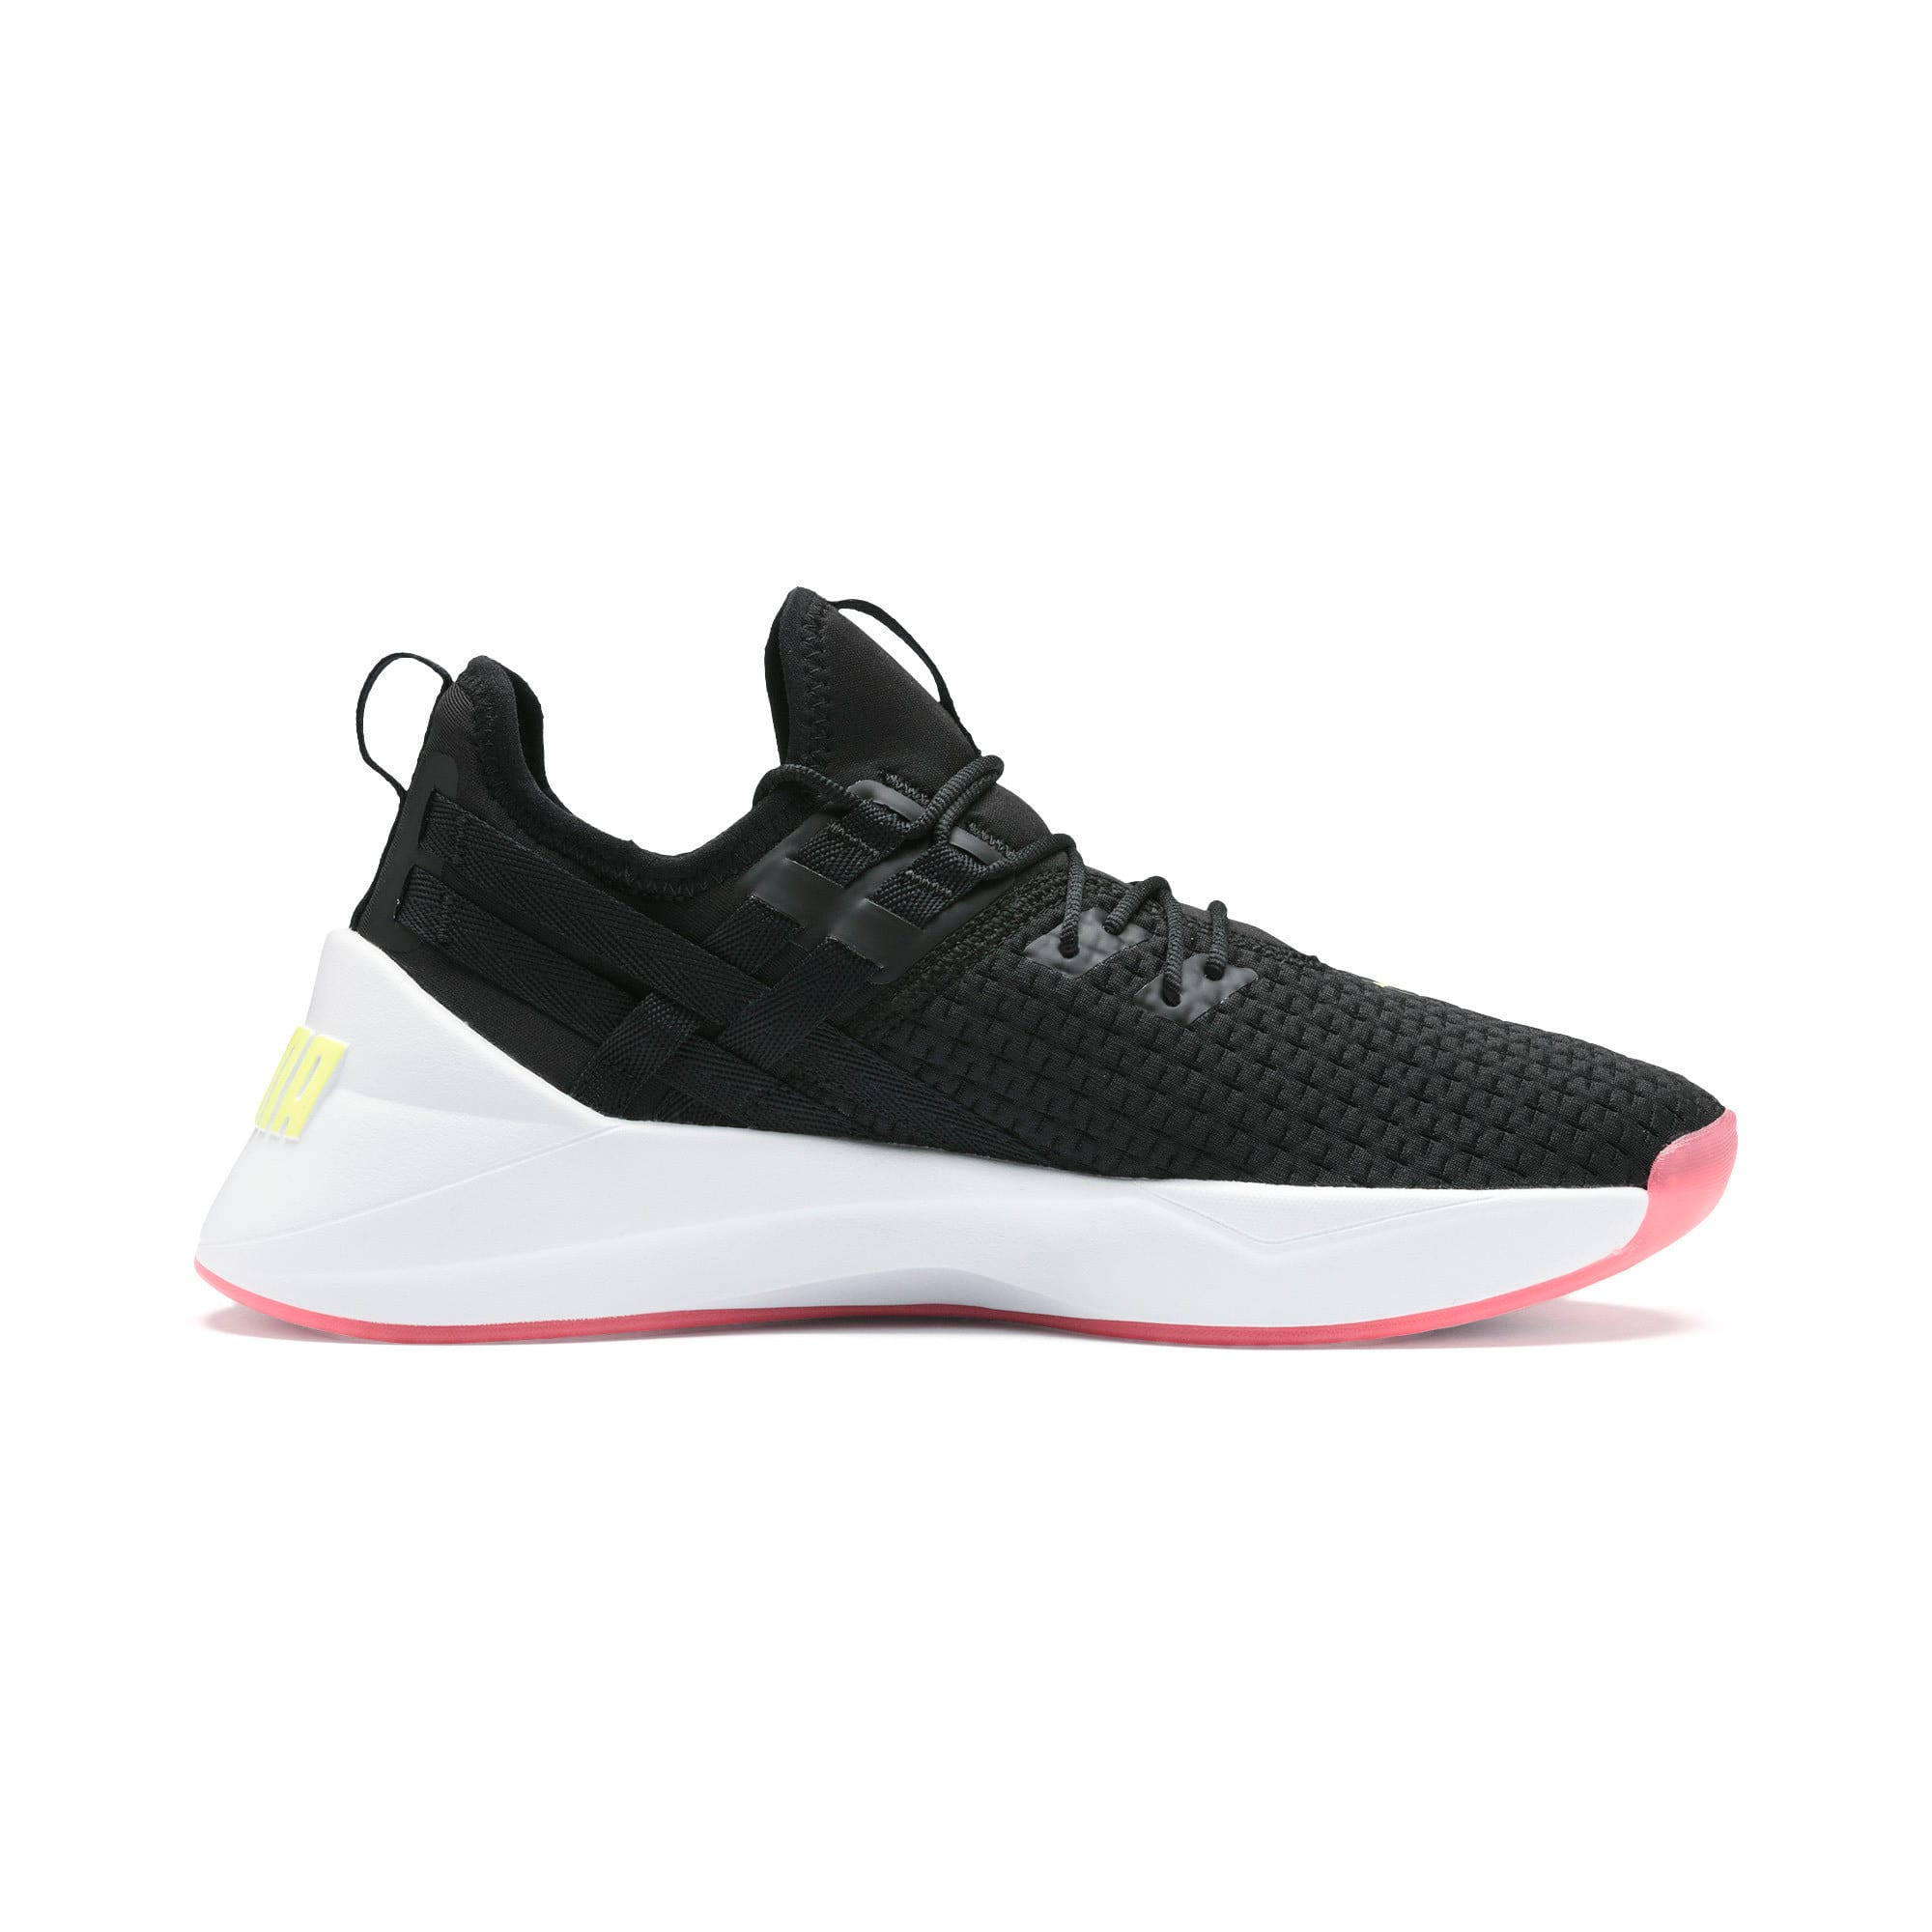 Thumbnail 7 of Jaab XT Women's Training Trainers, Puma Black-Puma White, medium-IND